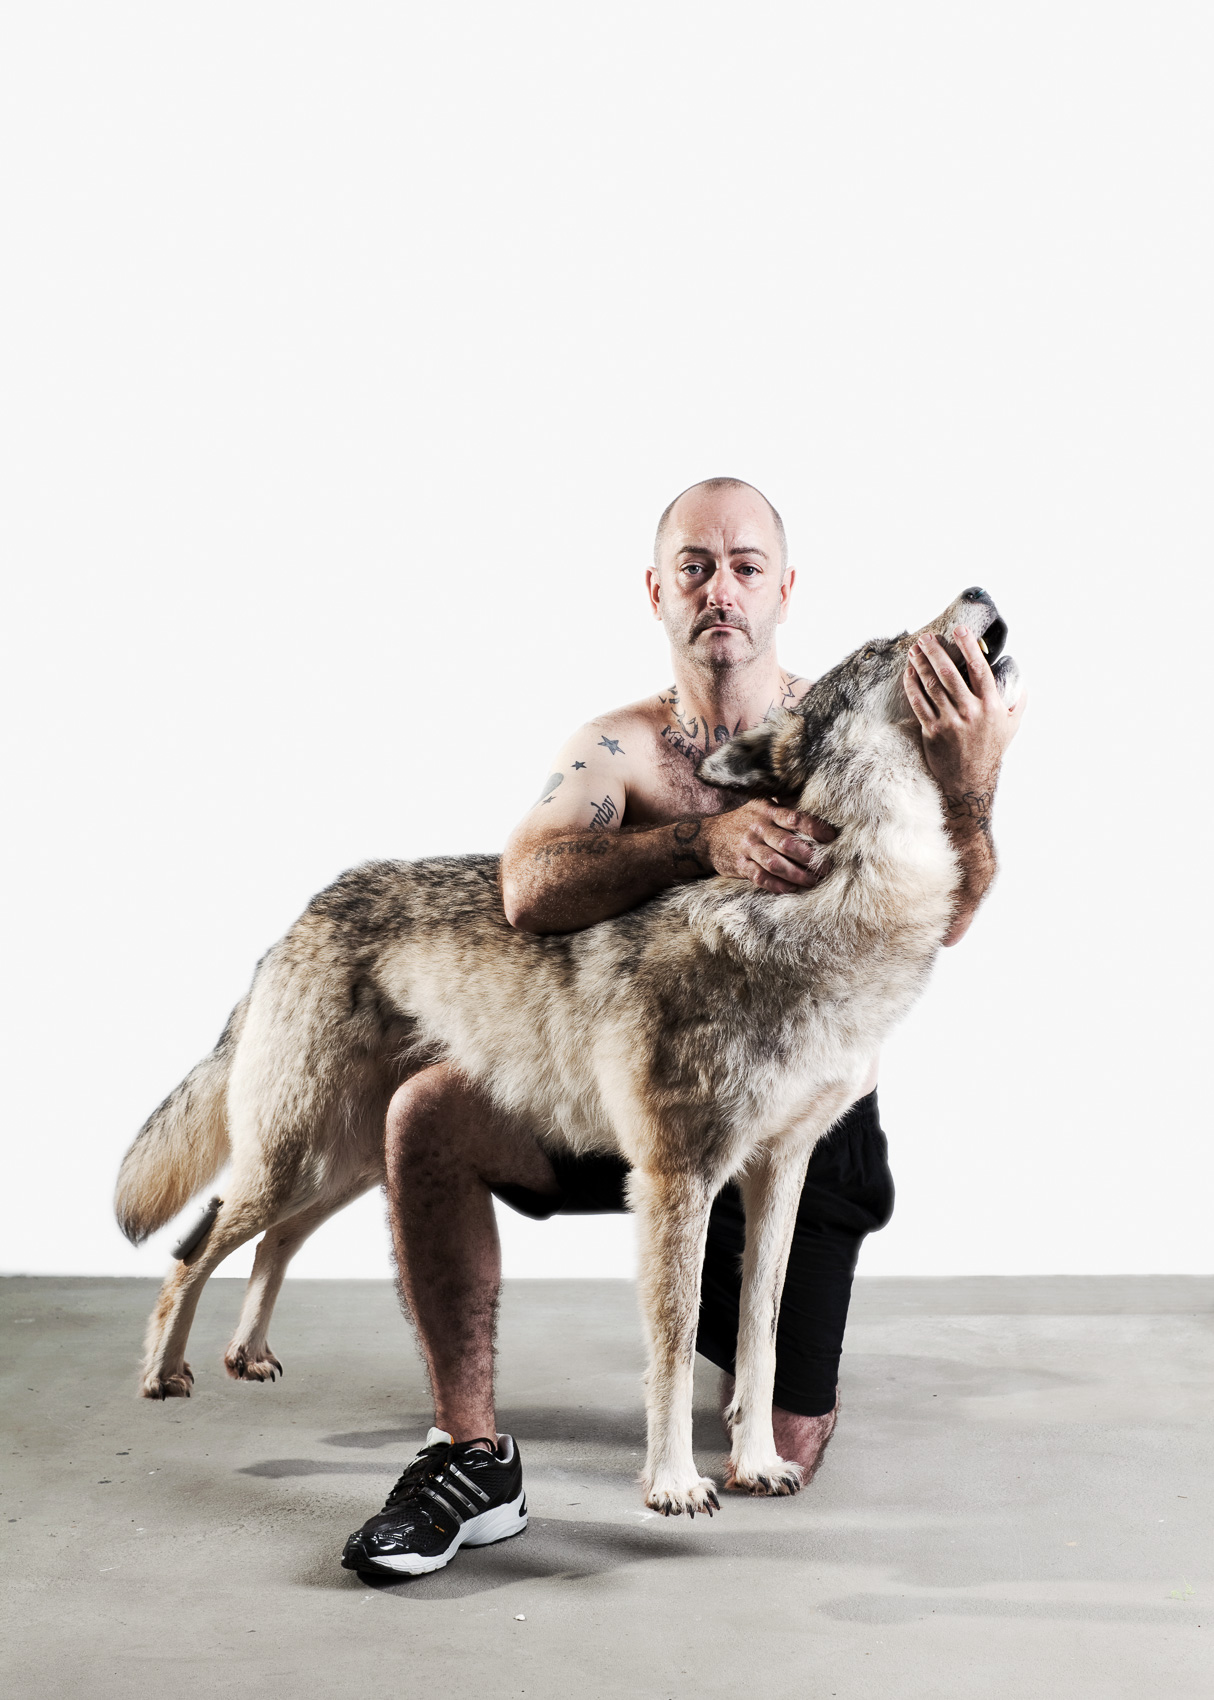 Douglas Gordon, artist / The Herald Magazine | PATRICK STRATTNER PHOTOGRAPHY